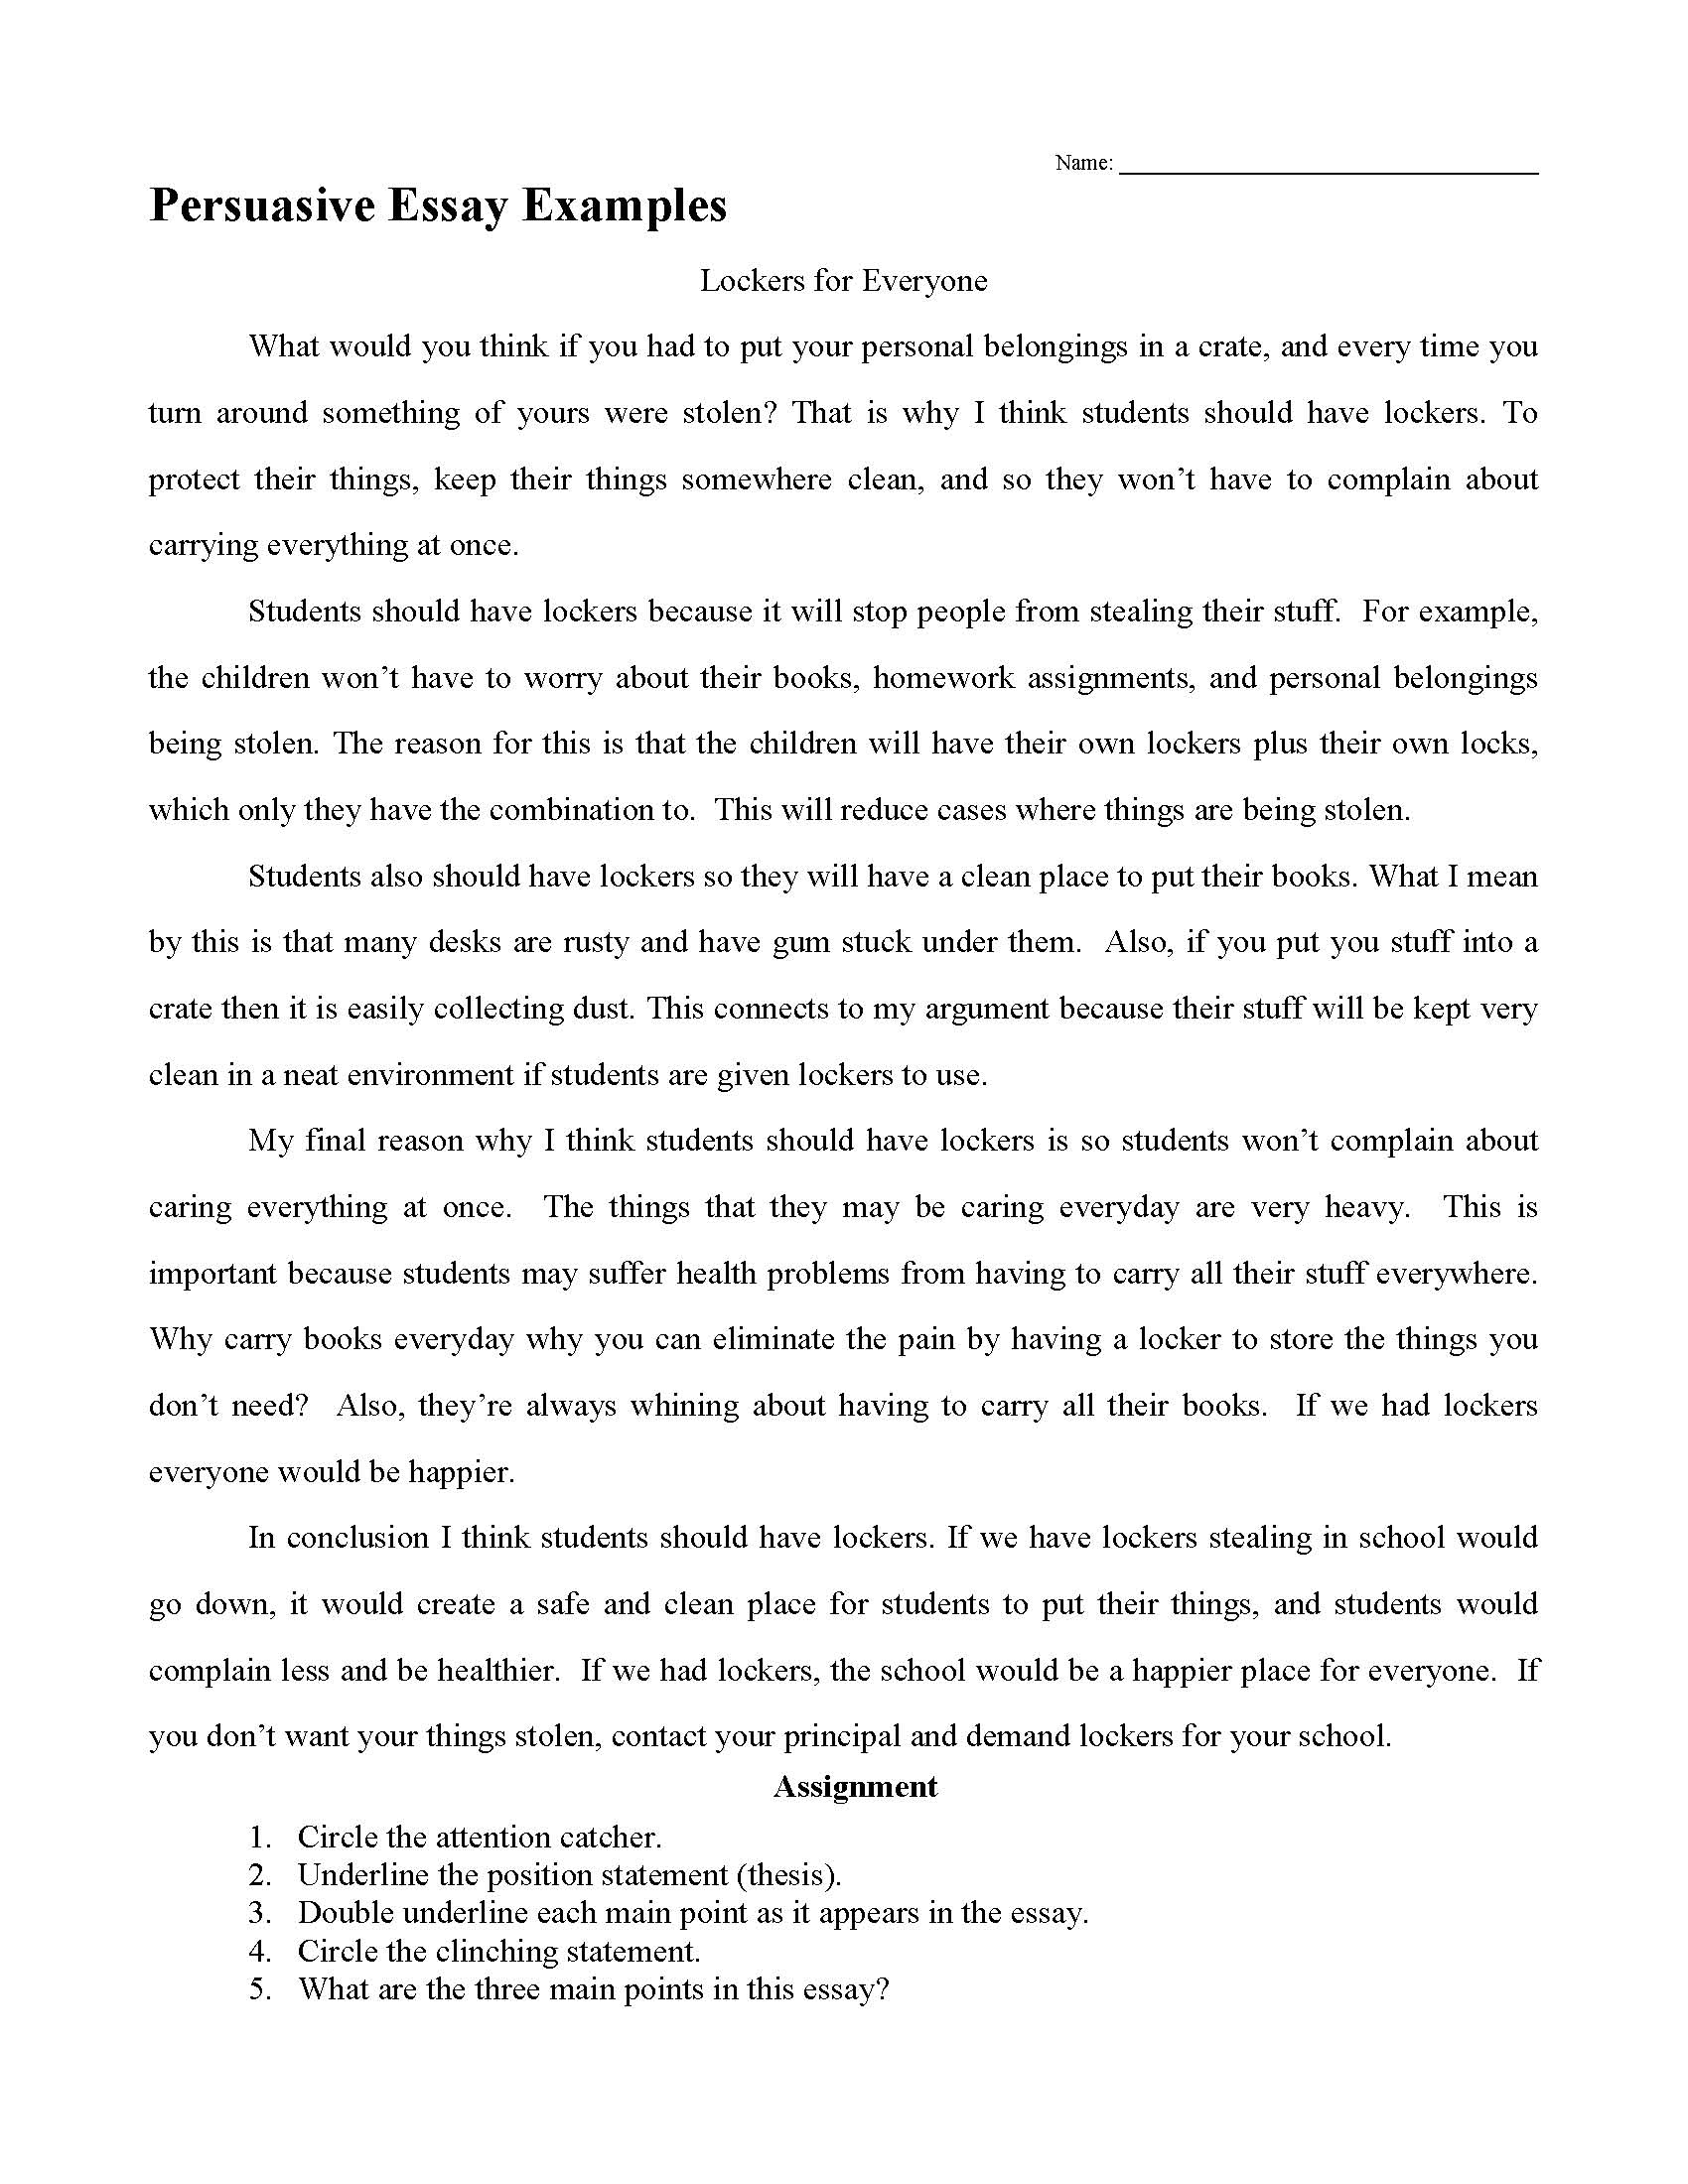 024 How To Start The Beginning Of Research Paper Persuasive Essay Examples Unique A Discussion Section Write Body Apa Intro Example Full